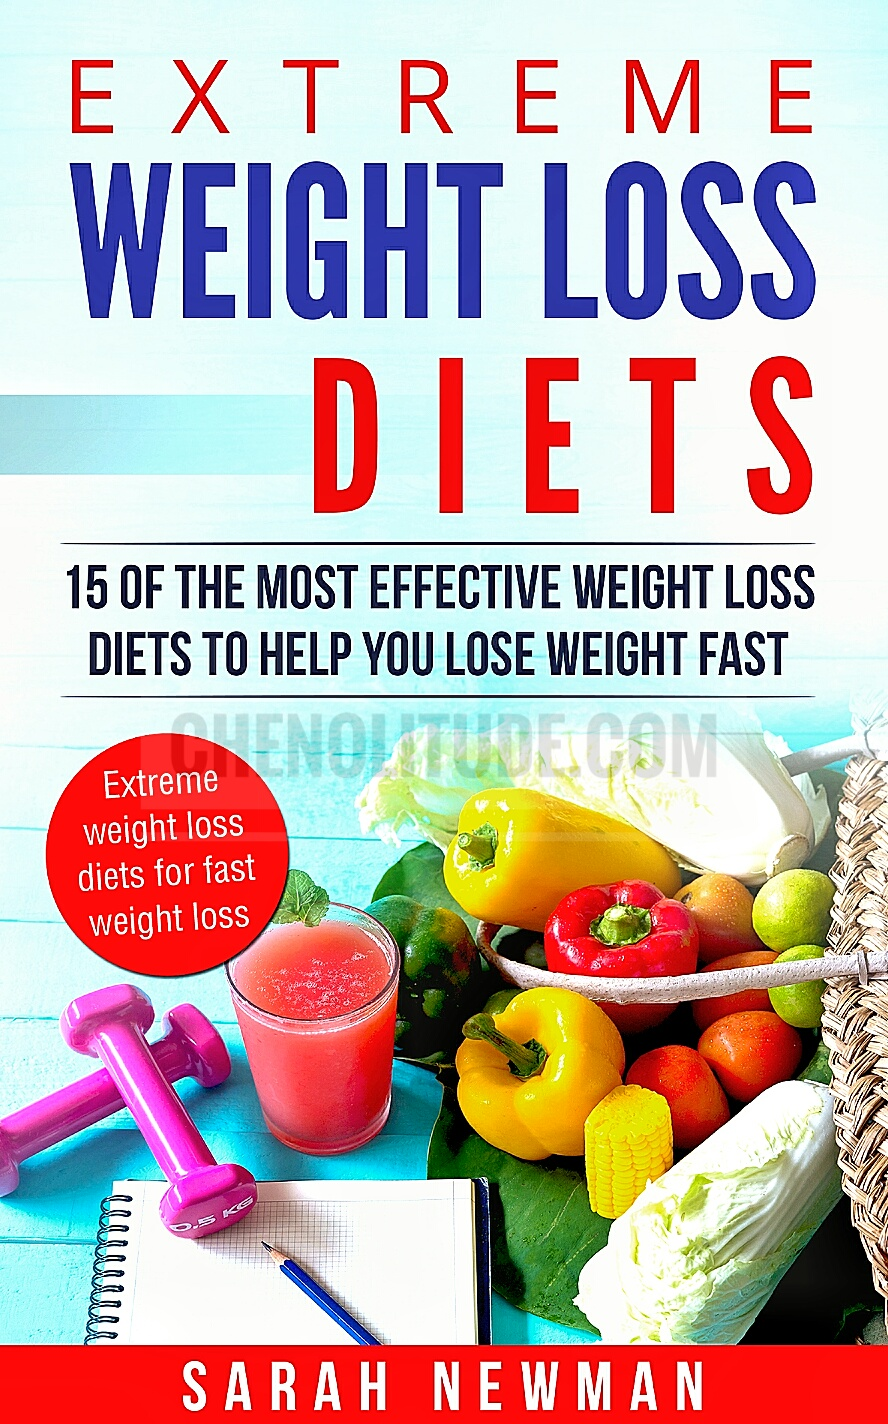 Extreme Weight Loss Diets, Anyone?